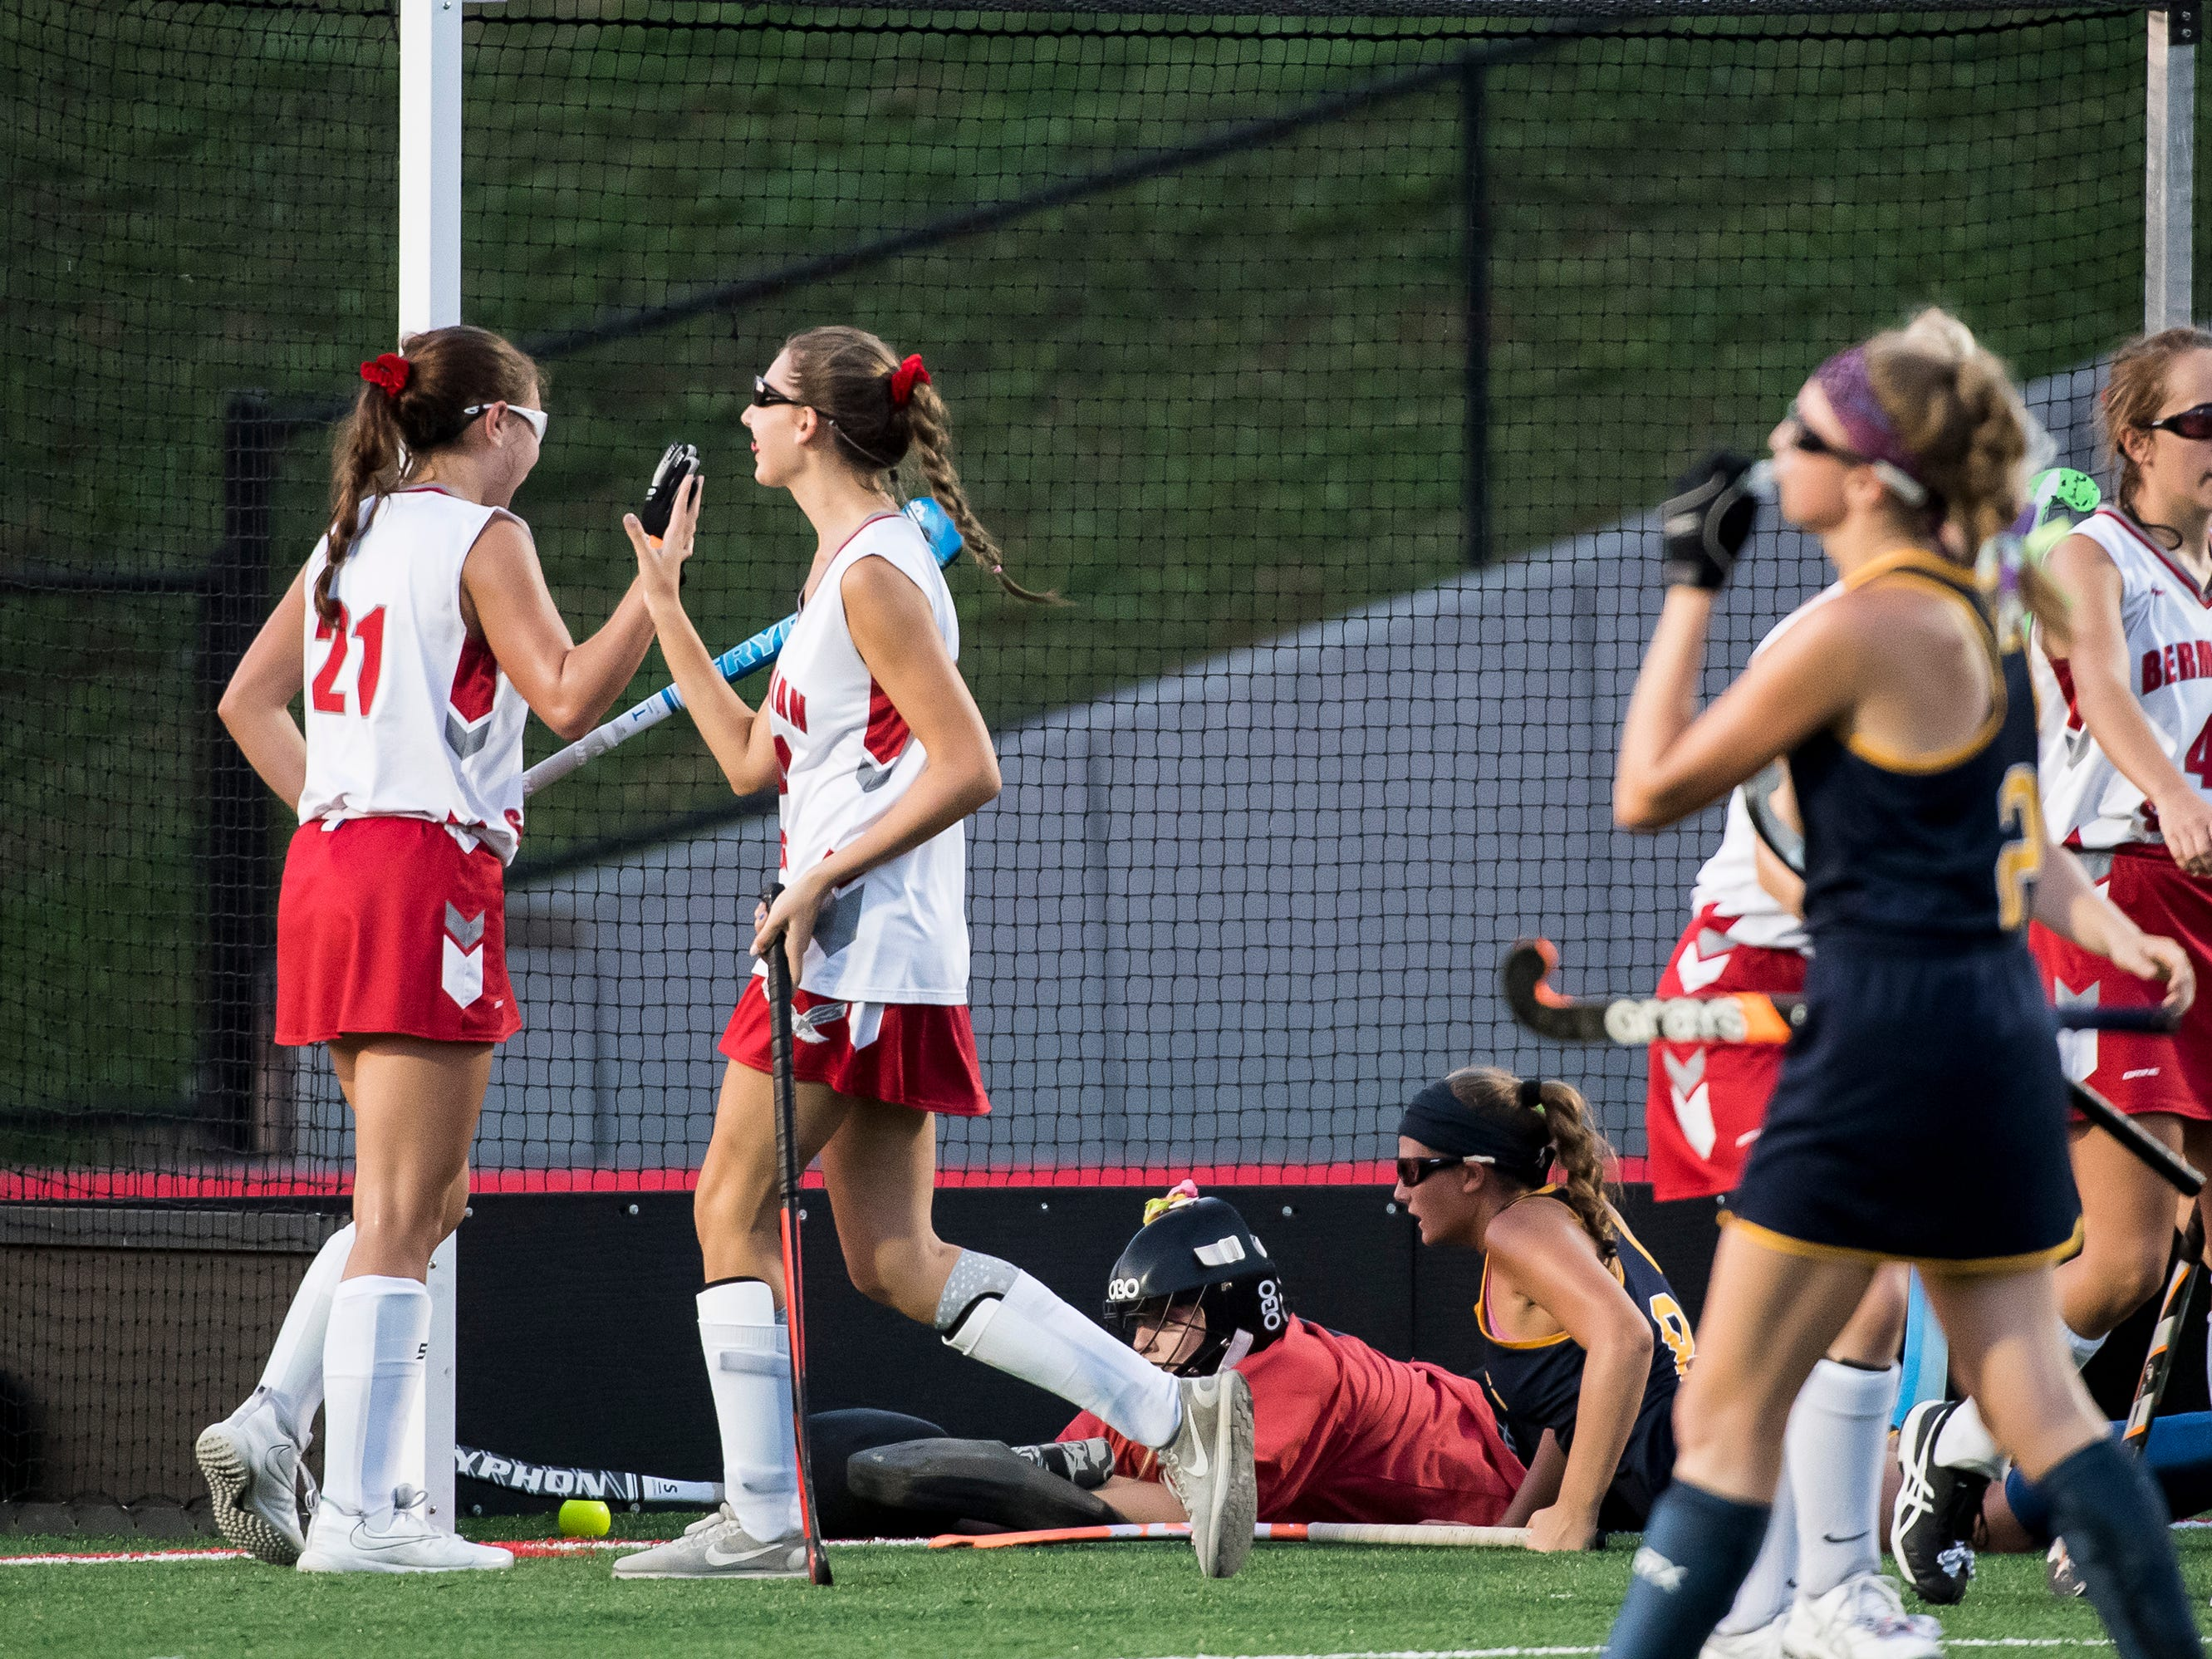 Bermudian Springs' Keri Speelman, left, and Hannah Wheeler celebrate after scoring a last second goal against Littlestown on Tuesday, October 9, 2018. The Eagles won 4-0.